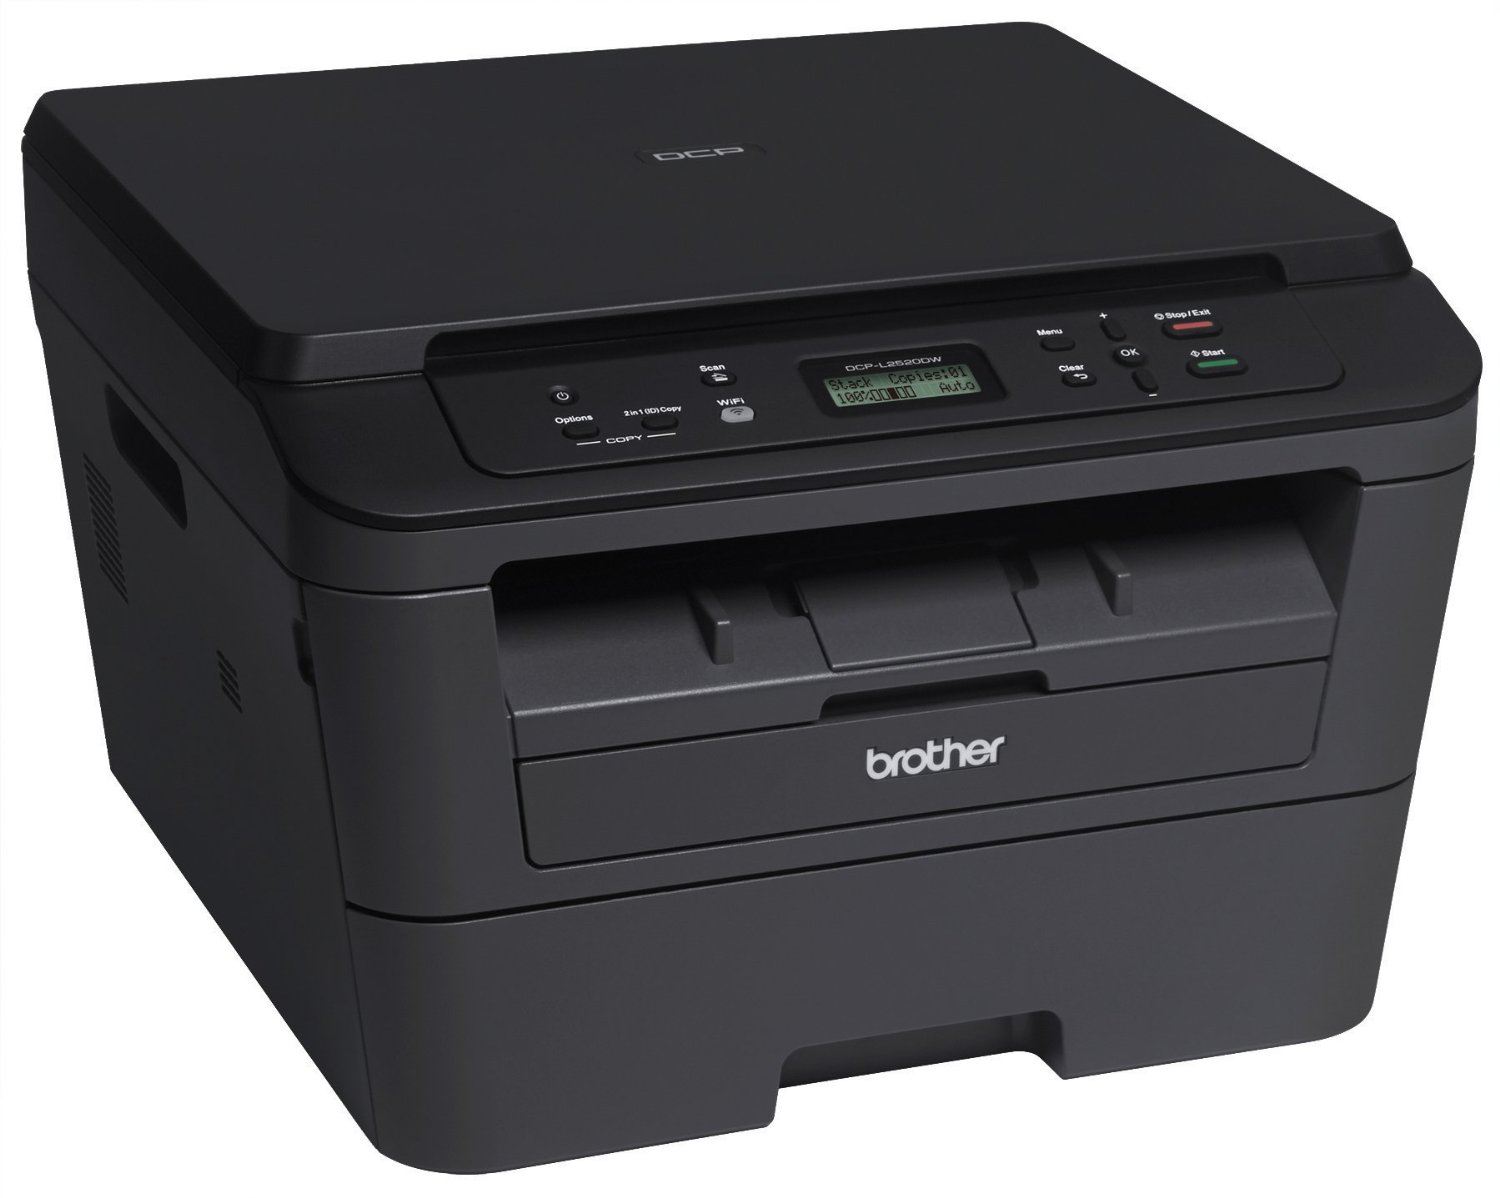 Inexpensive Laser Printer with WiFi that can make Copies